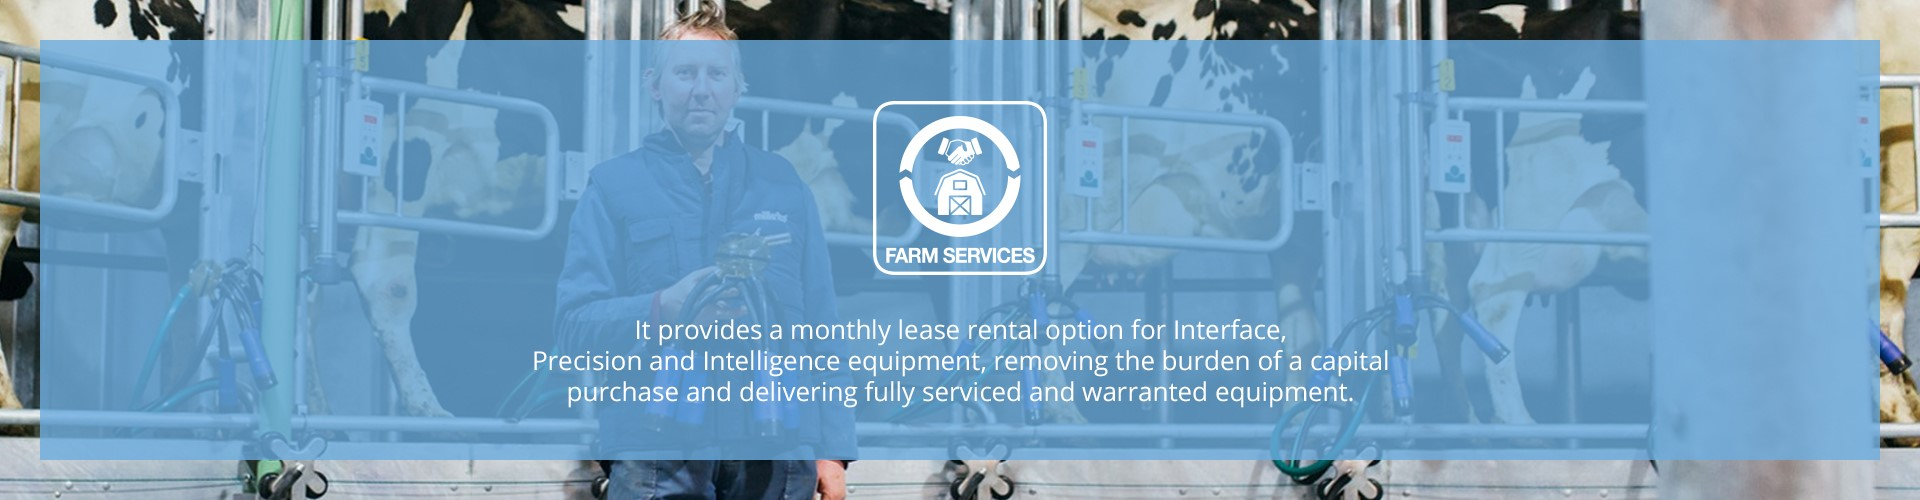 Farm Services Banner Light Blue